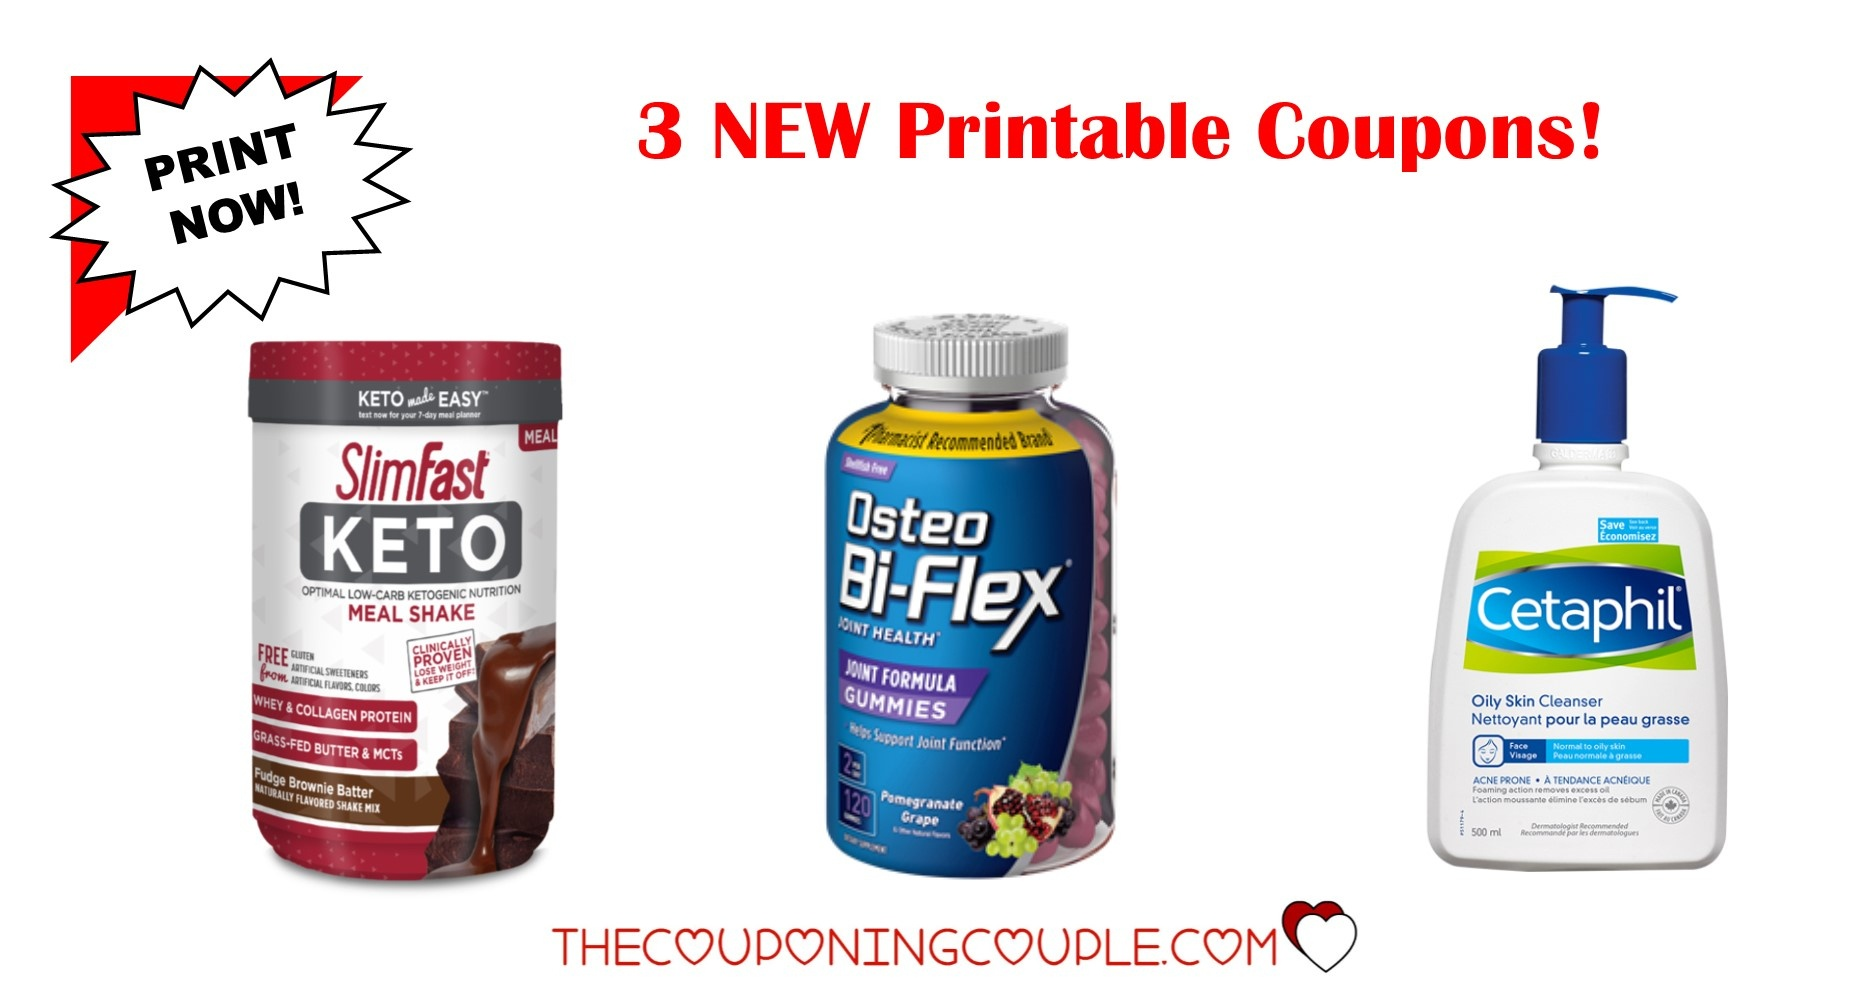 3 New Printable Coupons ~ $10 In Savings! Print Now! - Acne Free Coupons Printable